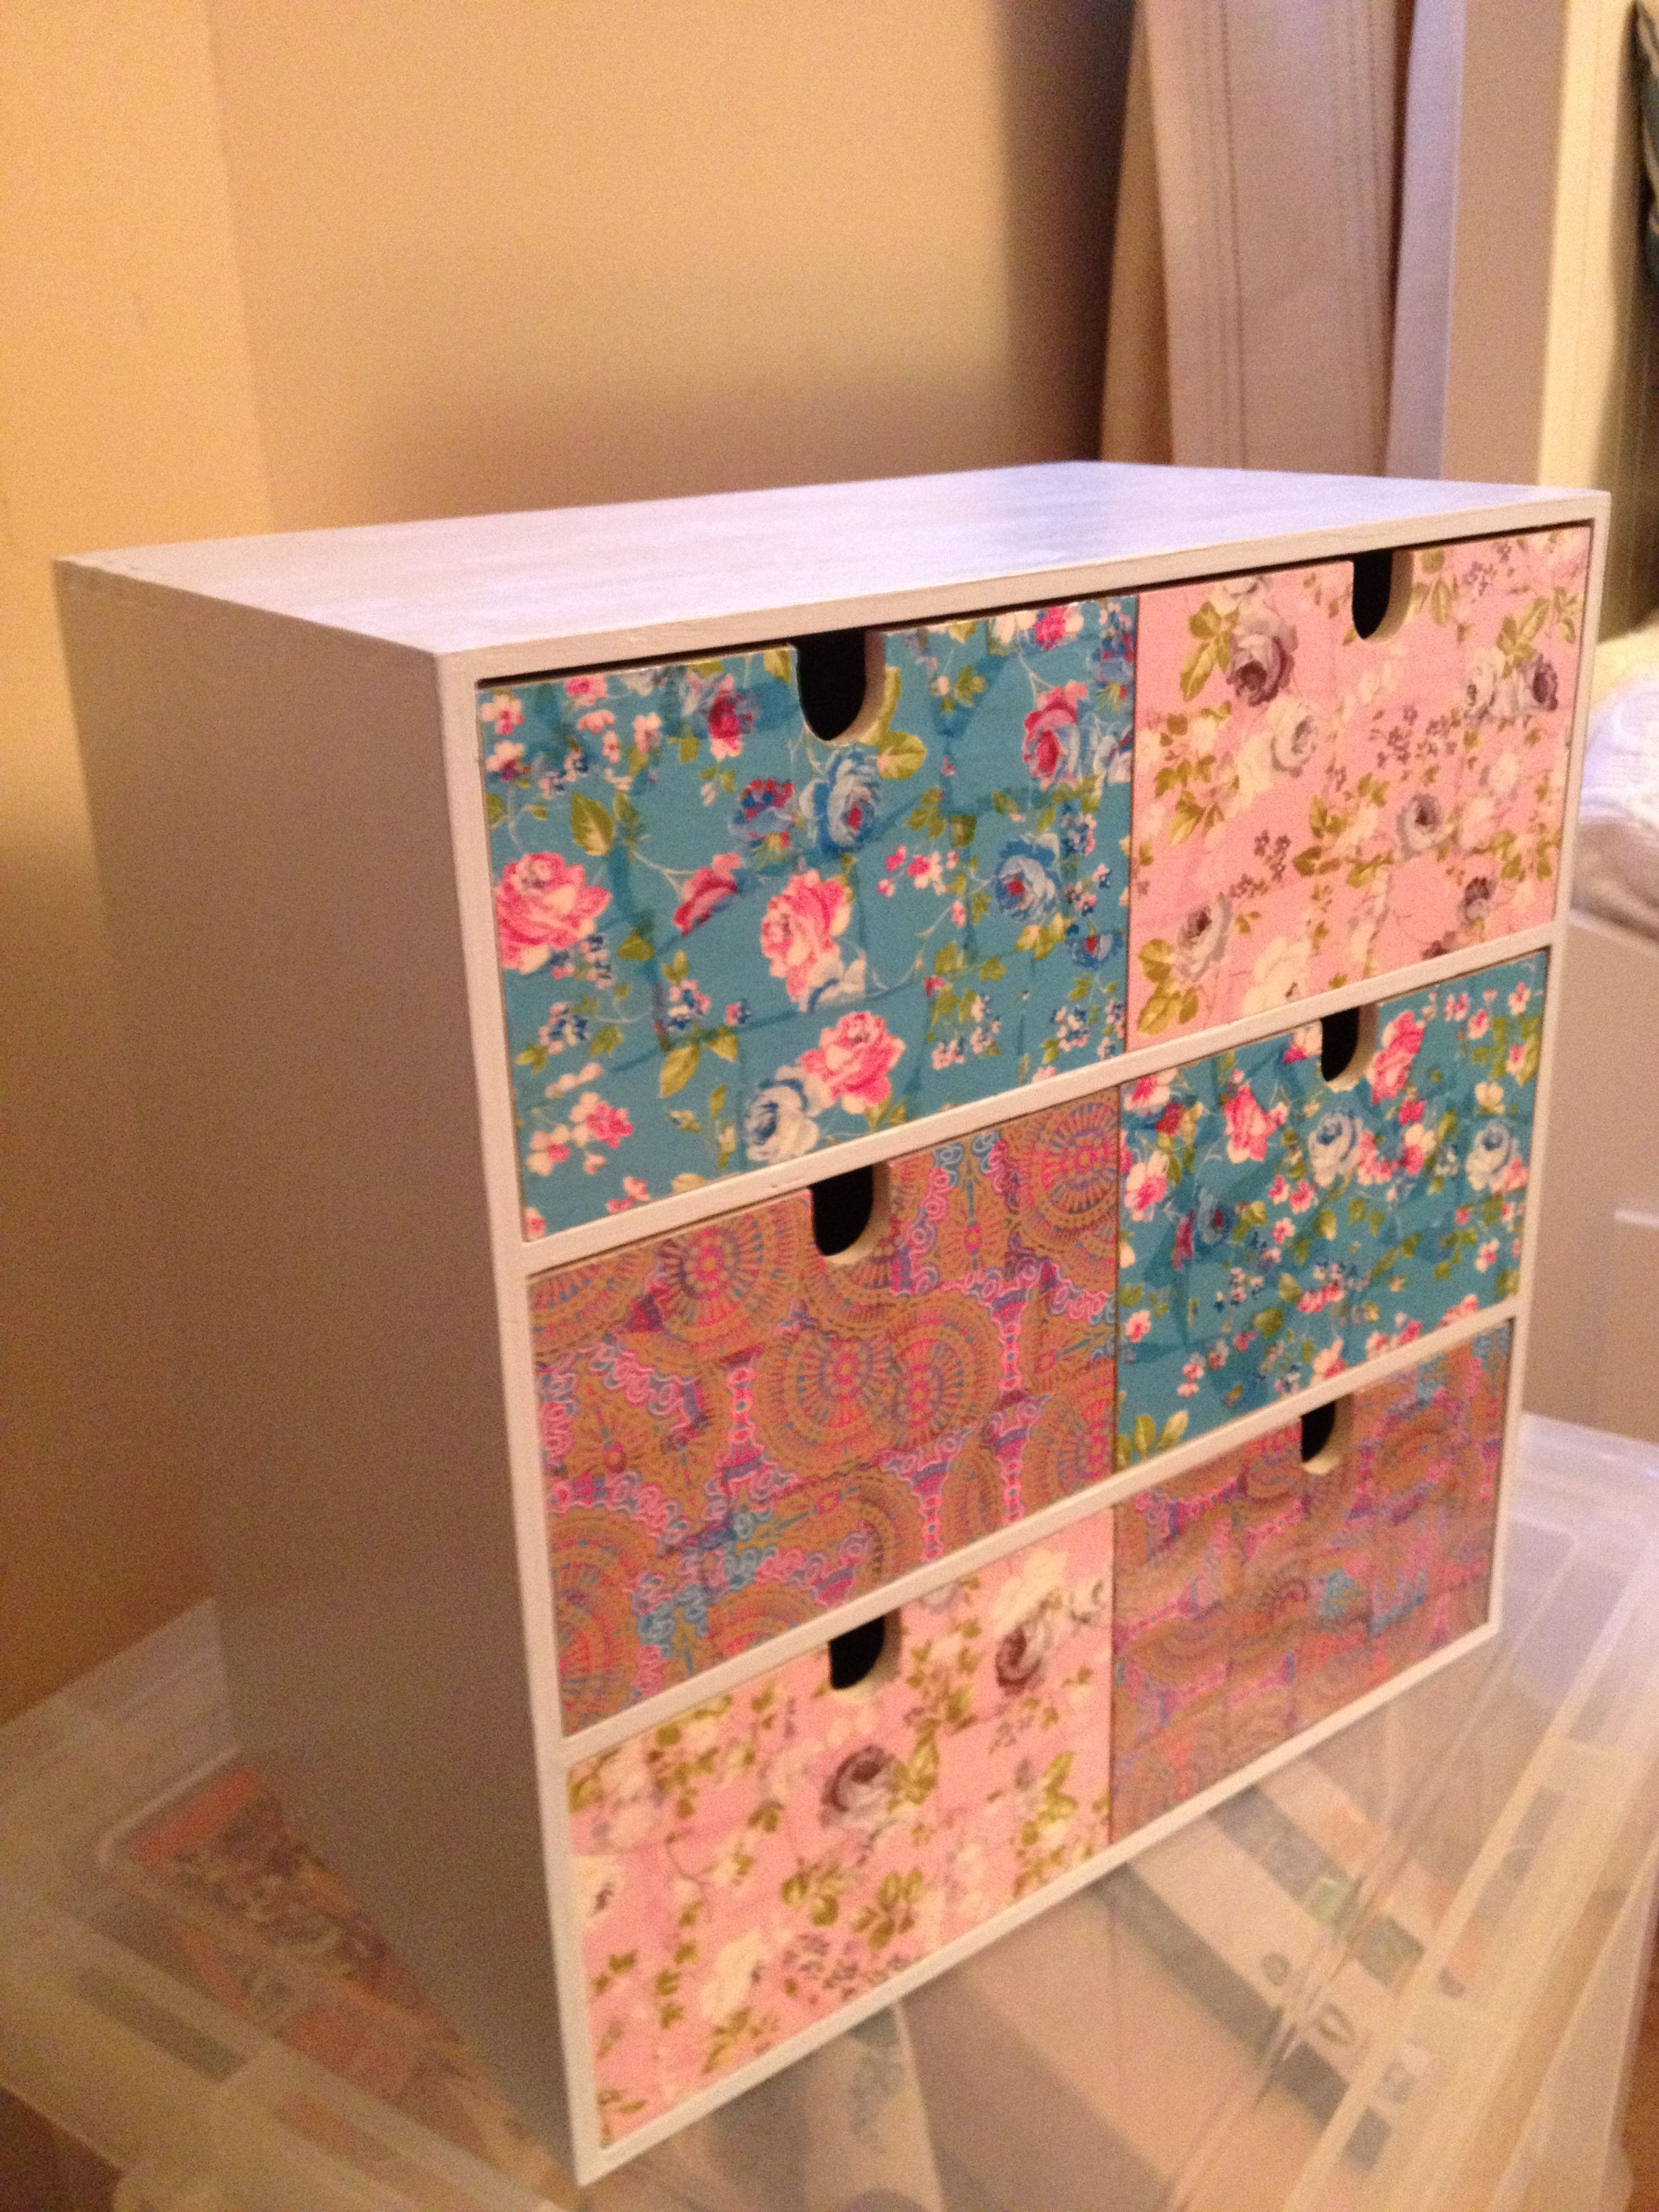 shabby and covers baskets drawer cupboard any to style elegance quality drawers character old paper fabric storage cabinet five stunning wicker space one unique brings modern bathroom lined decor